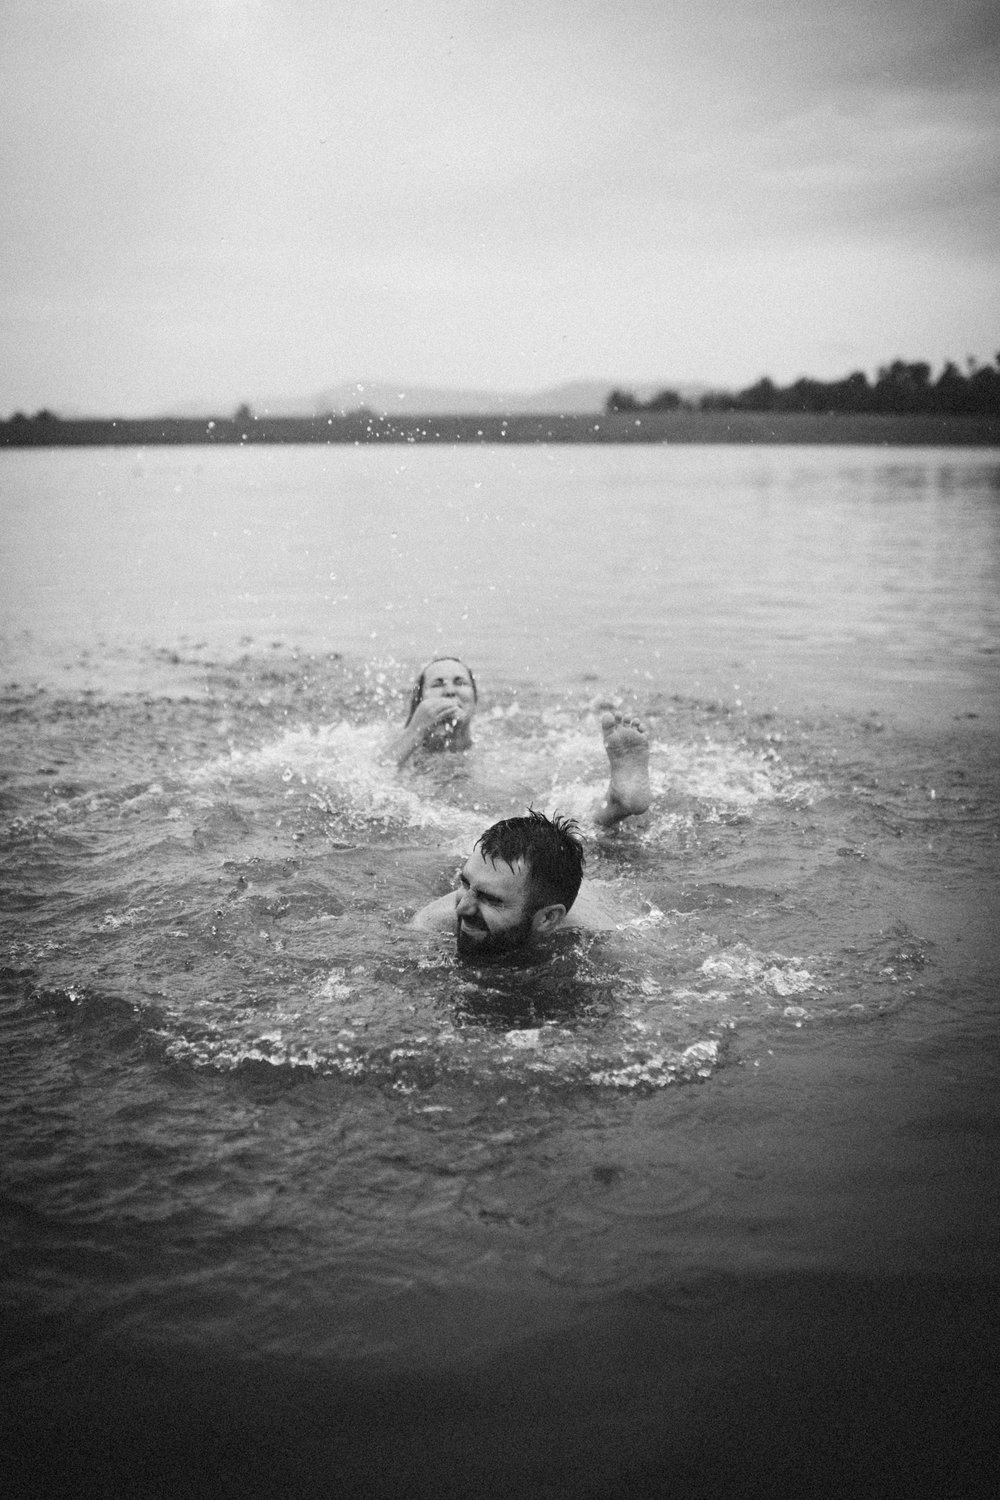 Sarah-Katherine-Davis-Photography-Louisville-Kentucky-Wedding-Elopement-Photographer-Just-Because-Session-Stormy-Blue-Hour-Swimming-In-Lake-Couple-Session-Abby-Schyler-138bw.jpg